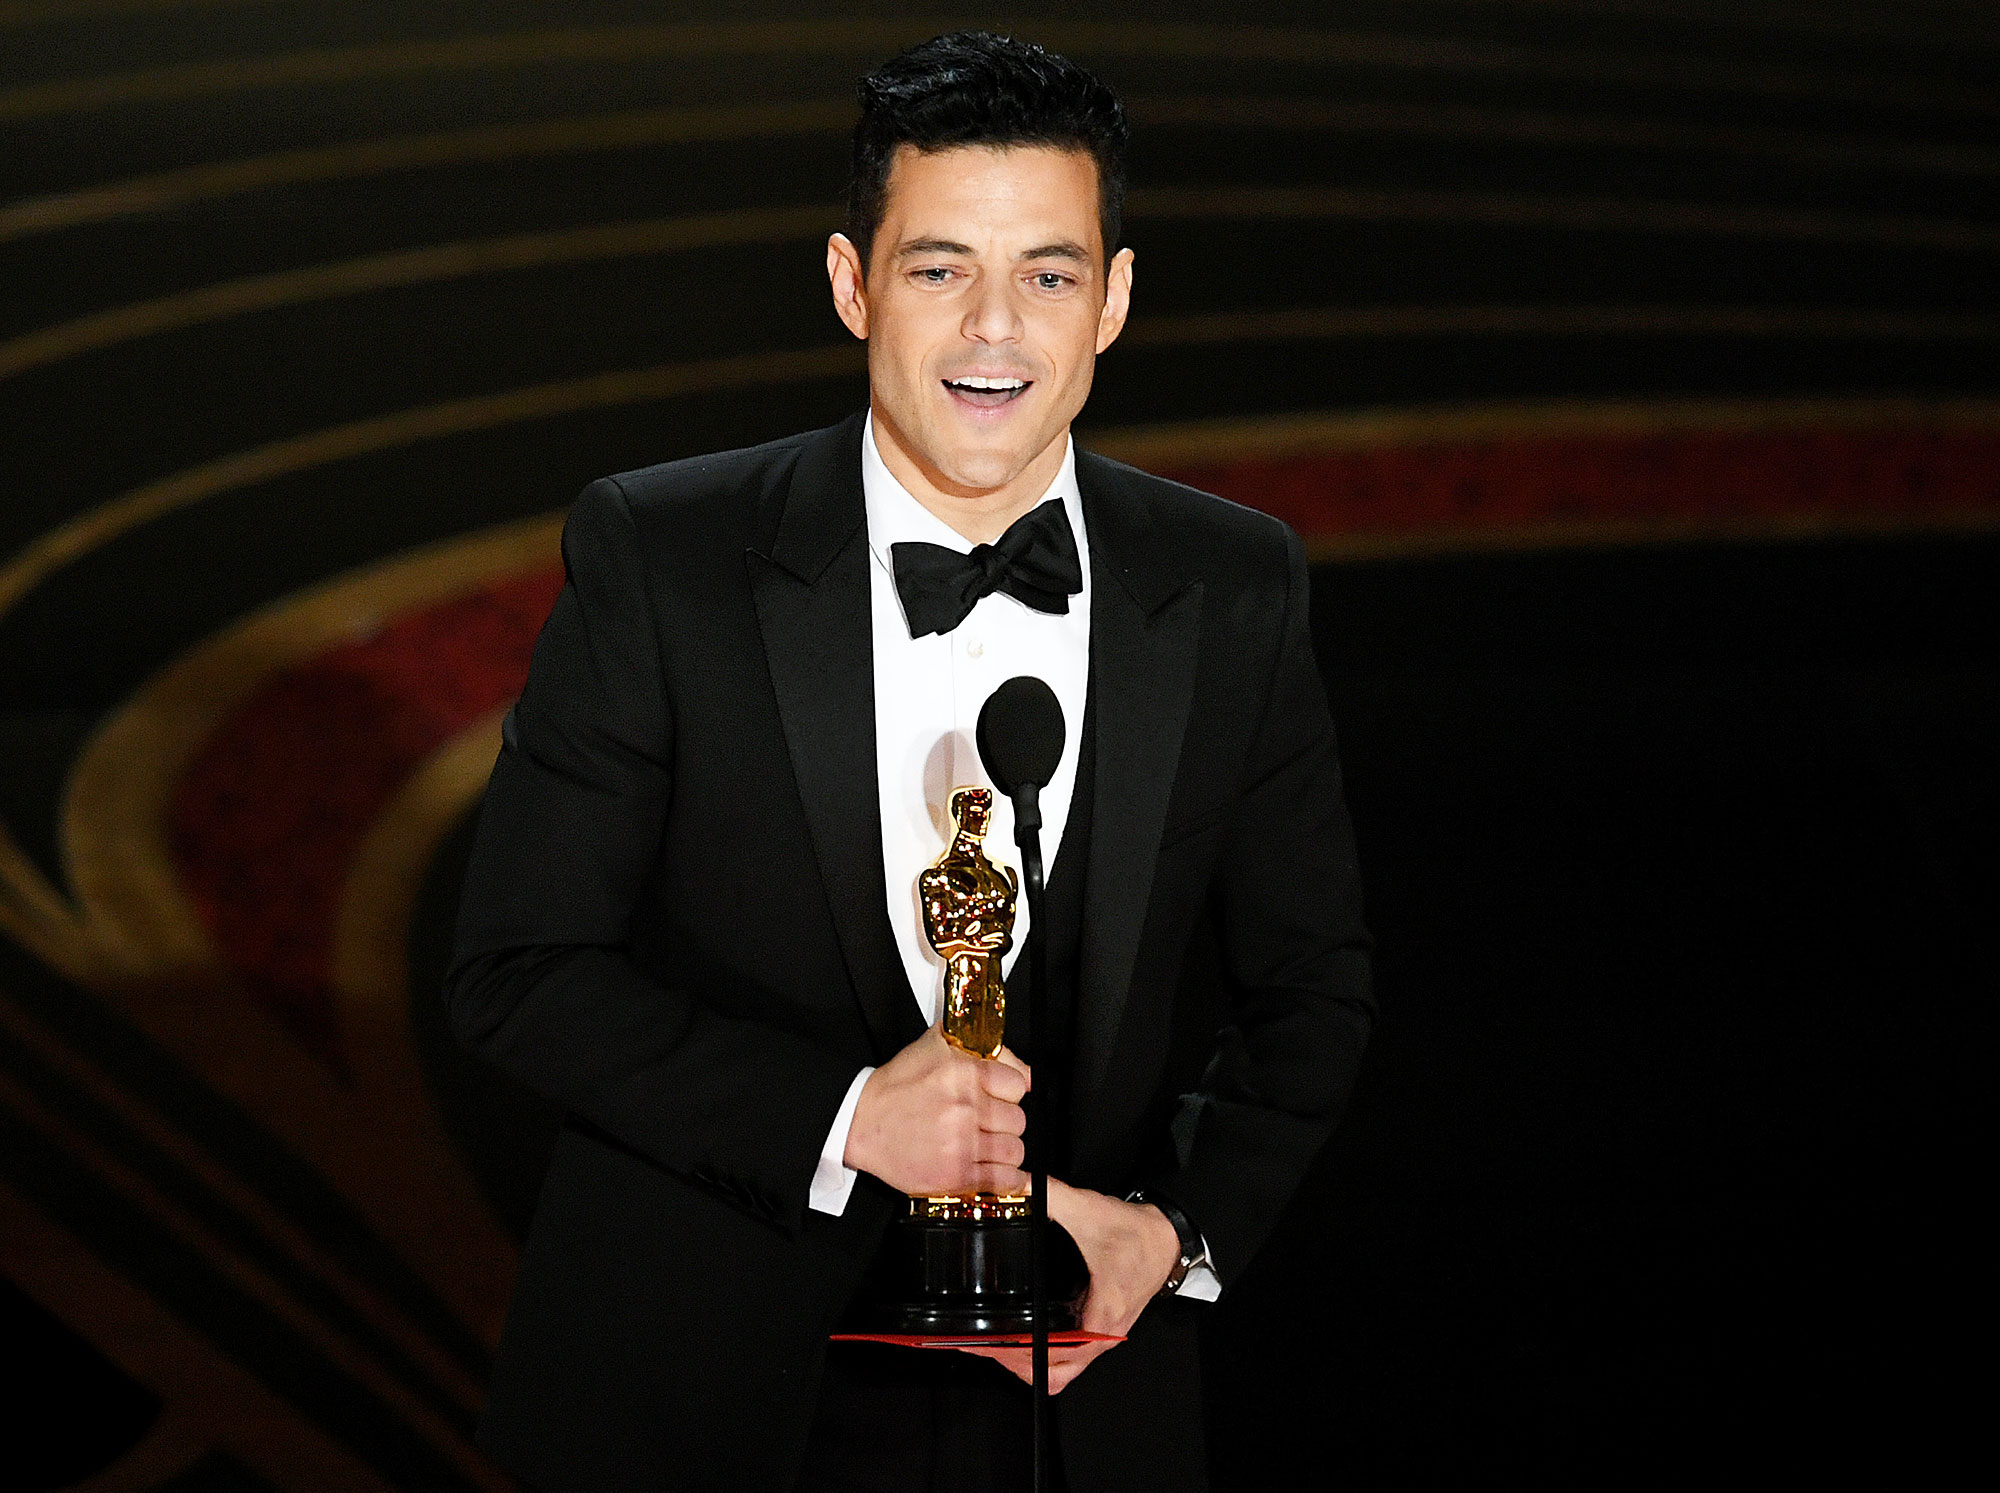 Oscars 2019 Winners List Rami Malek - Rami Malek accepts the Actor in a Leading Role award for 'Bohemian Rhapsody' onstage during the 91st Annual Academy Awards at Dolby Theatre on February 24, 2019 in Hollywood, California.